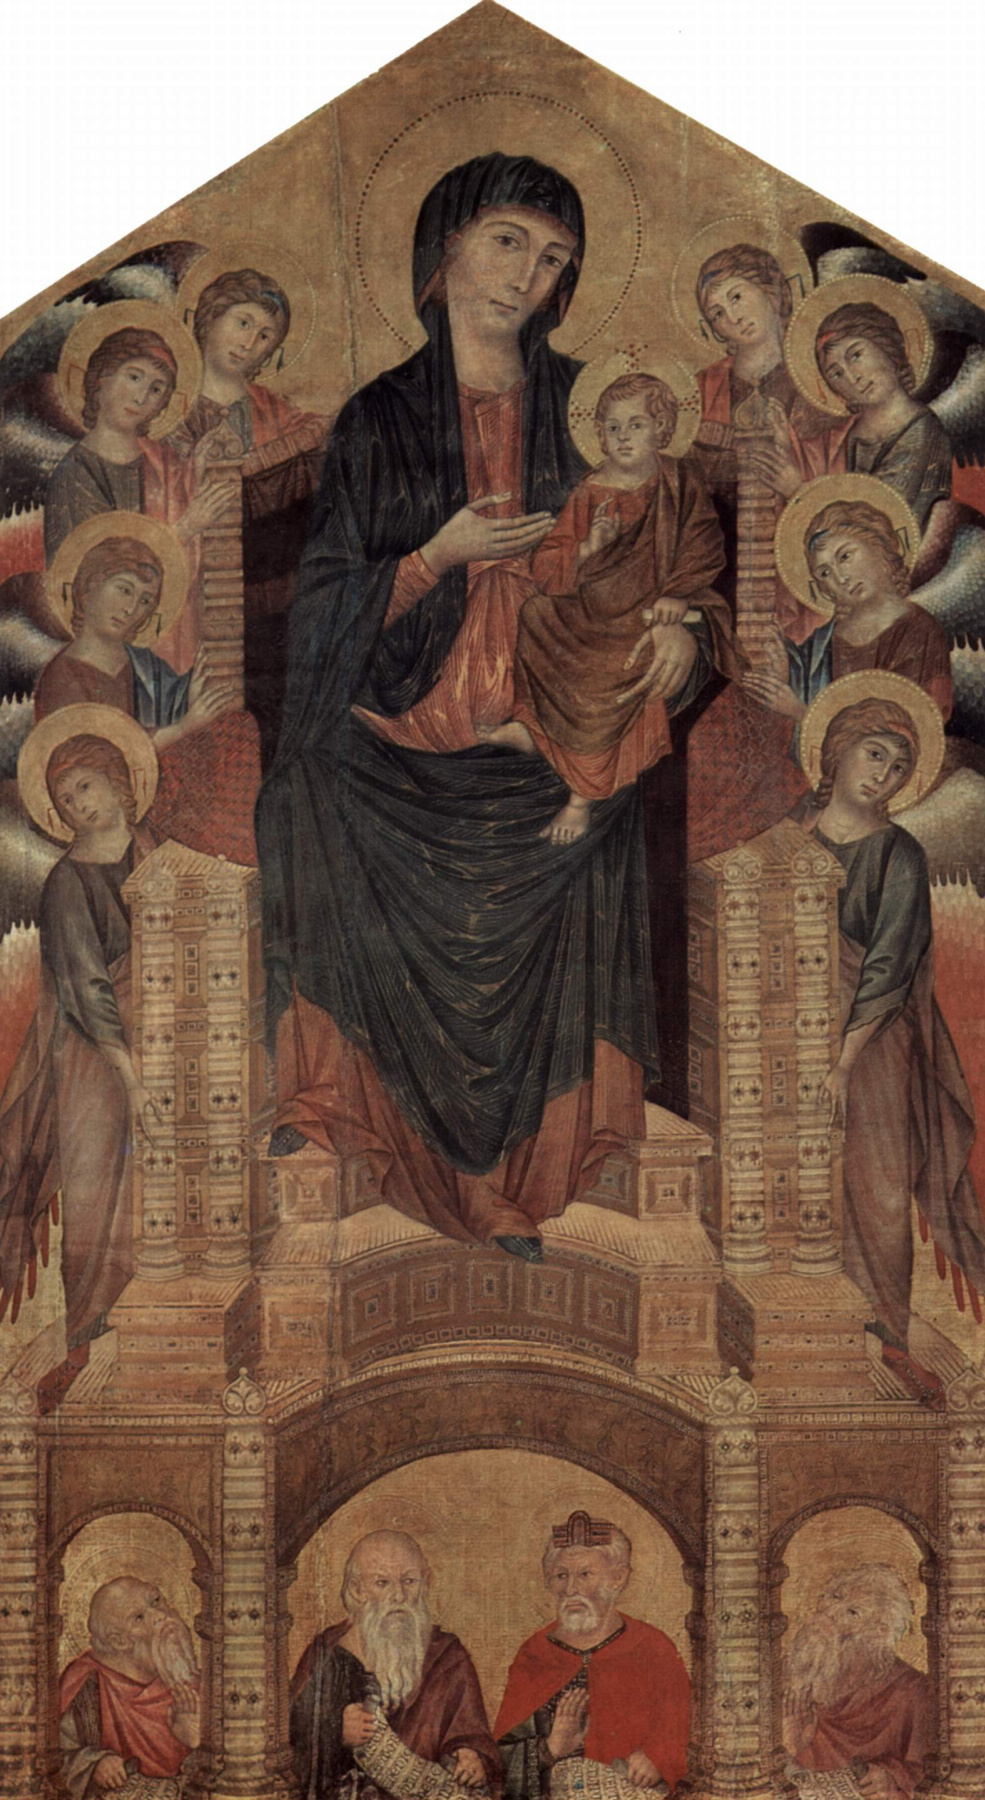 Cimabue (Chenny di Pepo). Madonna enthroned with eight angels and four prophets